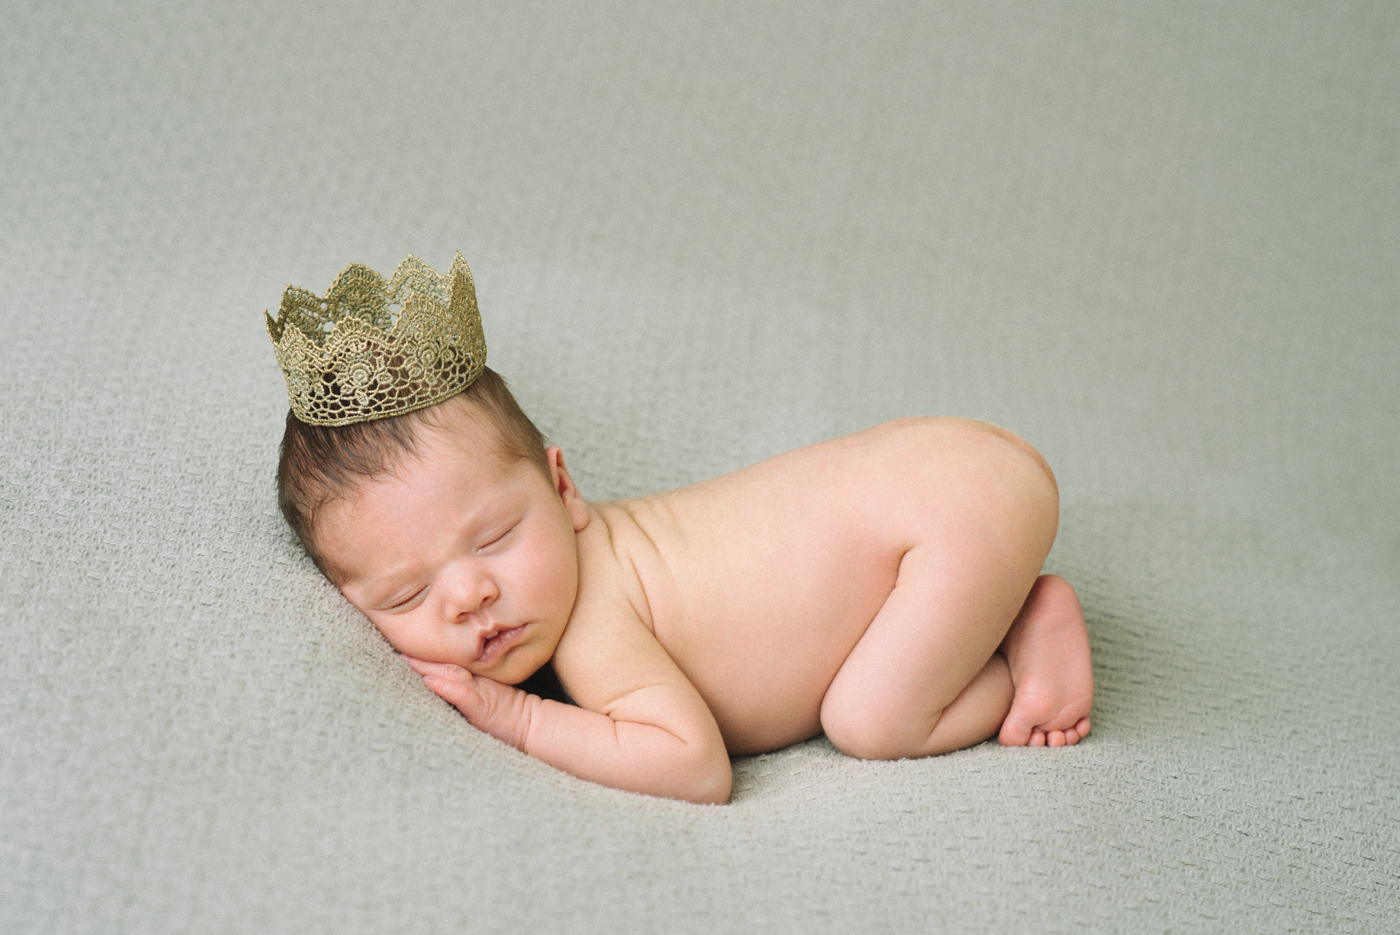 portland-newborn-photography-gold-crown-sleeping-baby-girl-blue-shelley-marie-photo